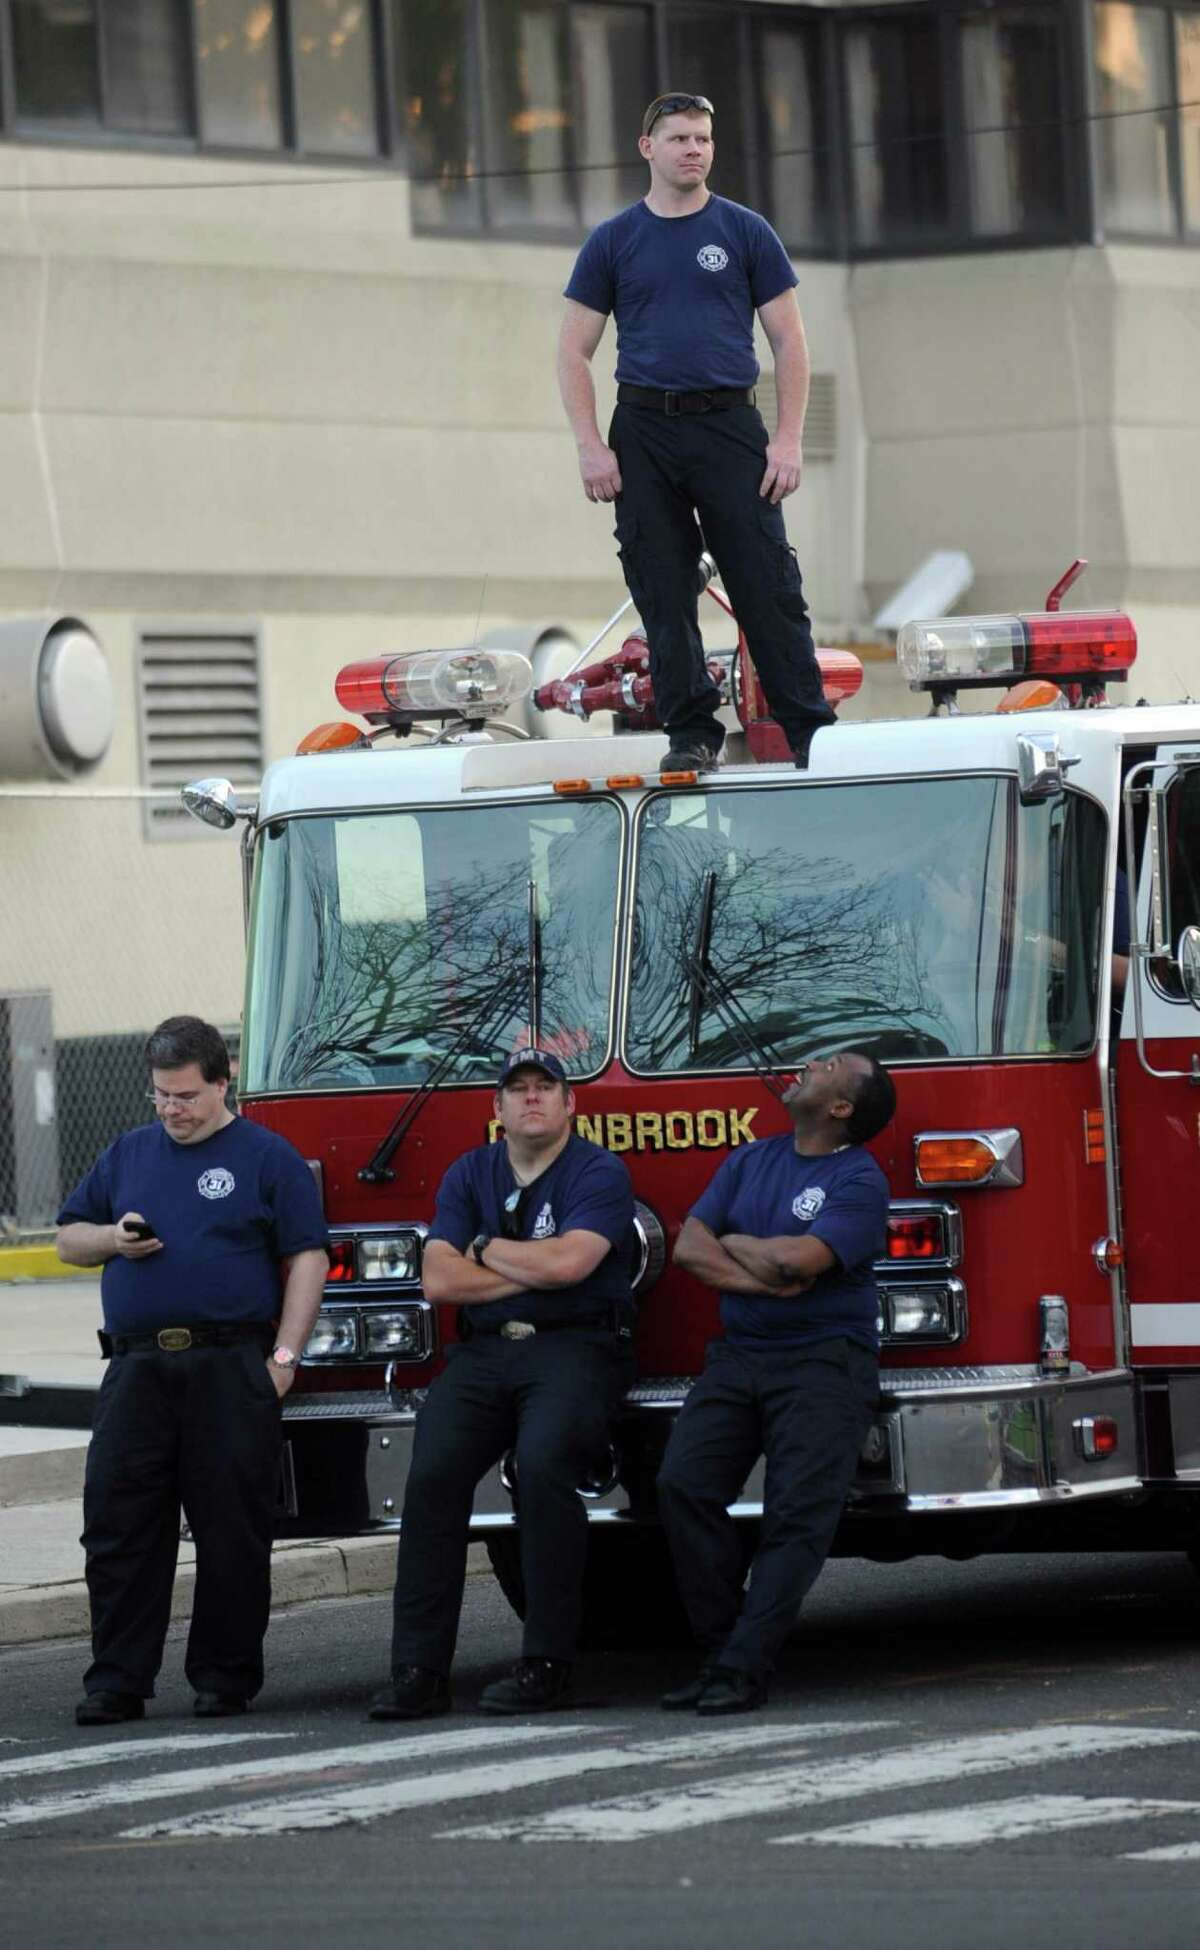 Members of the Glenbrook Fire Department watch the proceedings from their truck during the 6th annual Stamford Police Department Memorial Parade on Friday, May 4, 2012.